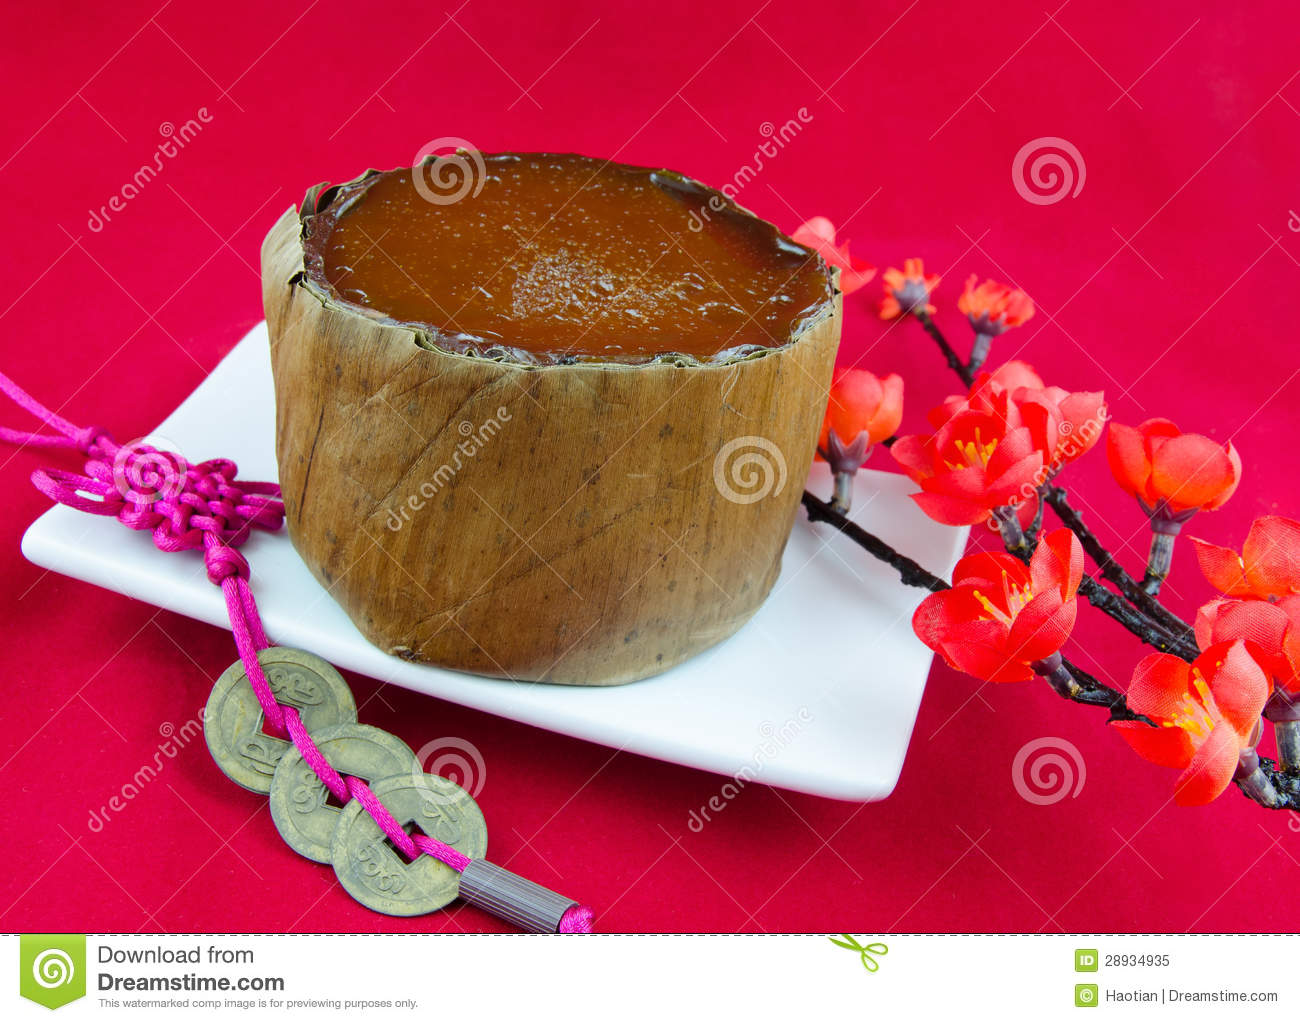 New Year Cake Images Free Download : Traditional Chinese New Year Cake Royalty Free Stock Photo ...